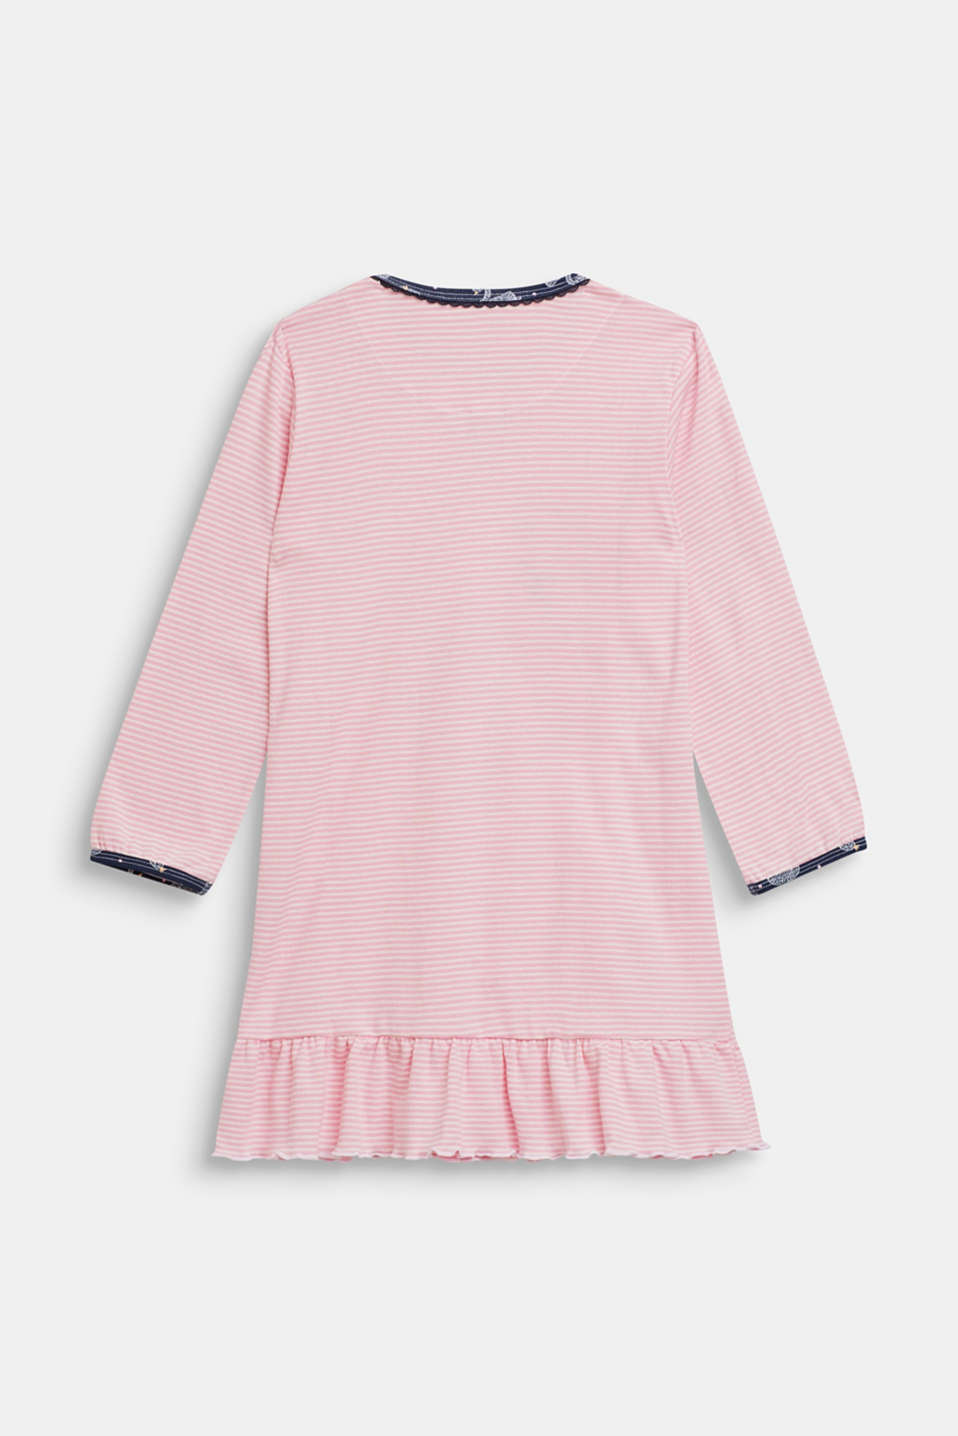 Nightshirt with a swan motif, made of 100% cotton, OLD PINK, detail image number 1